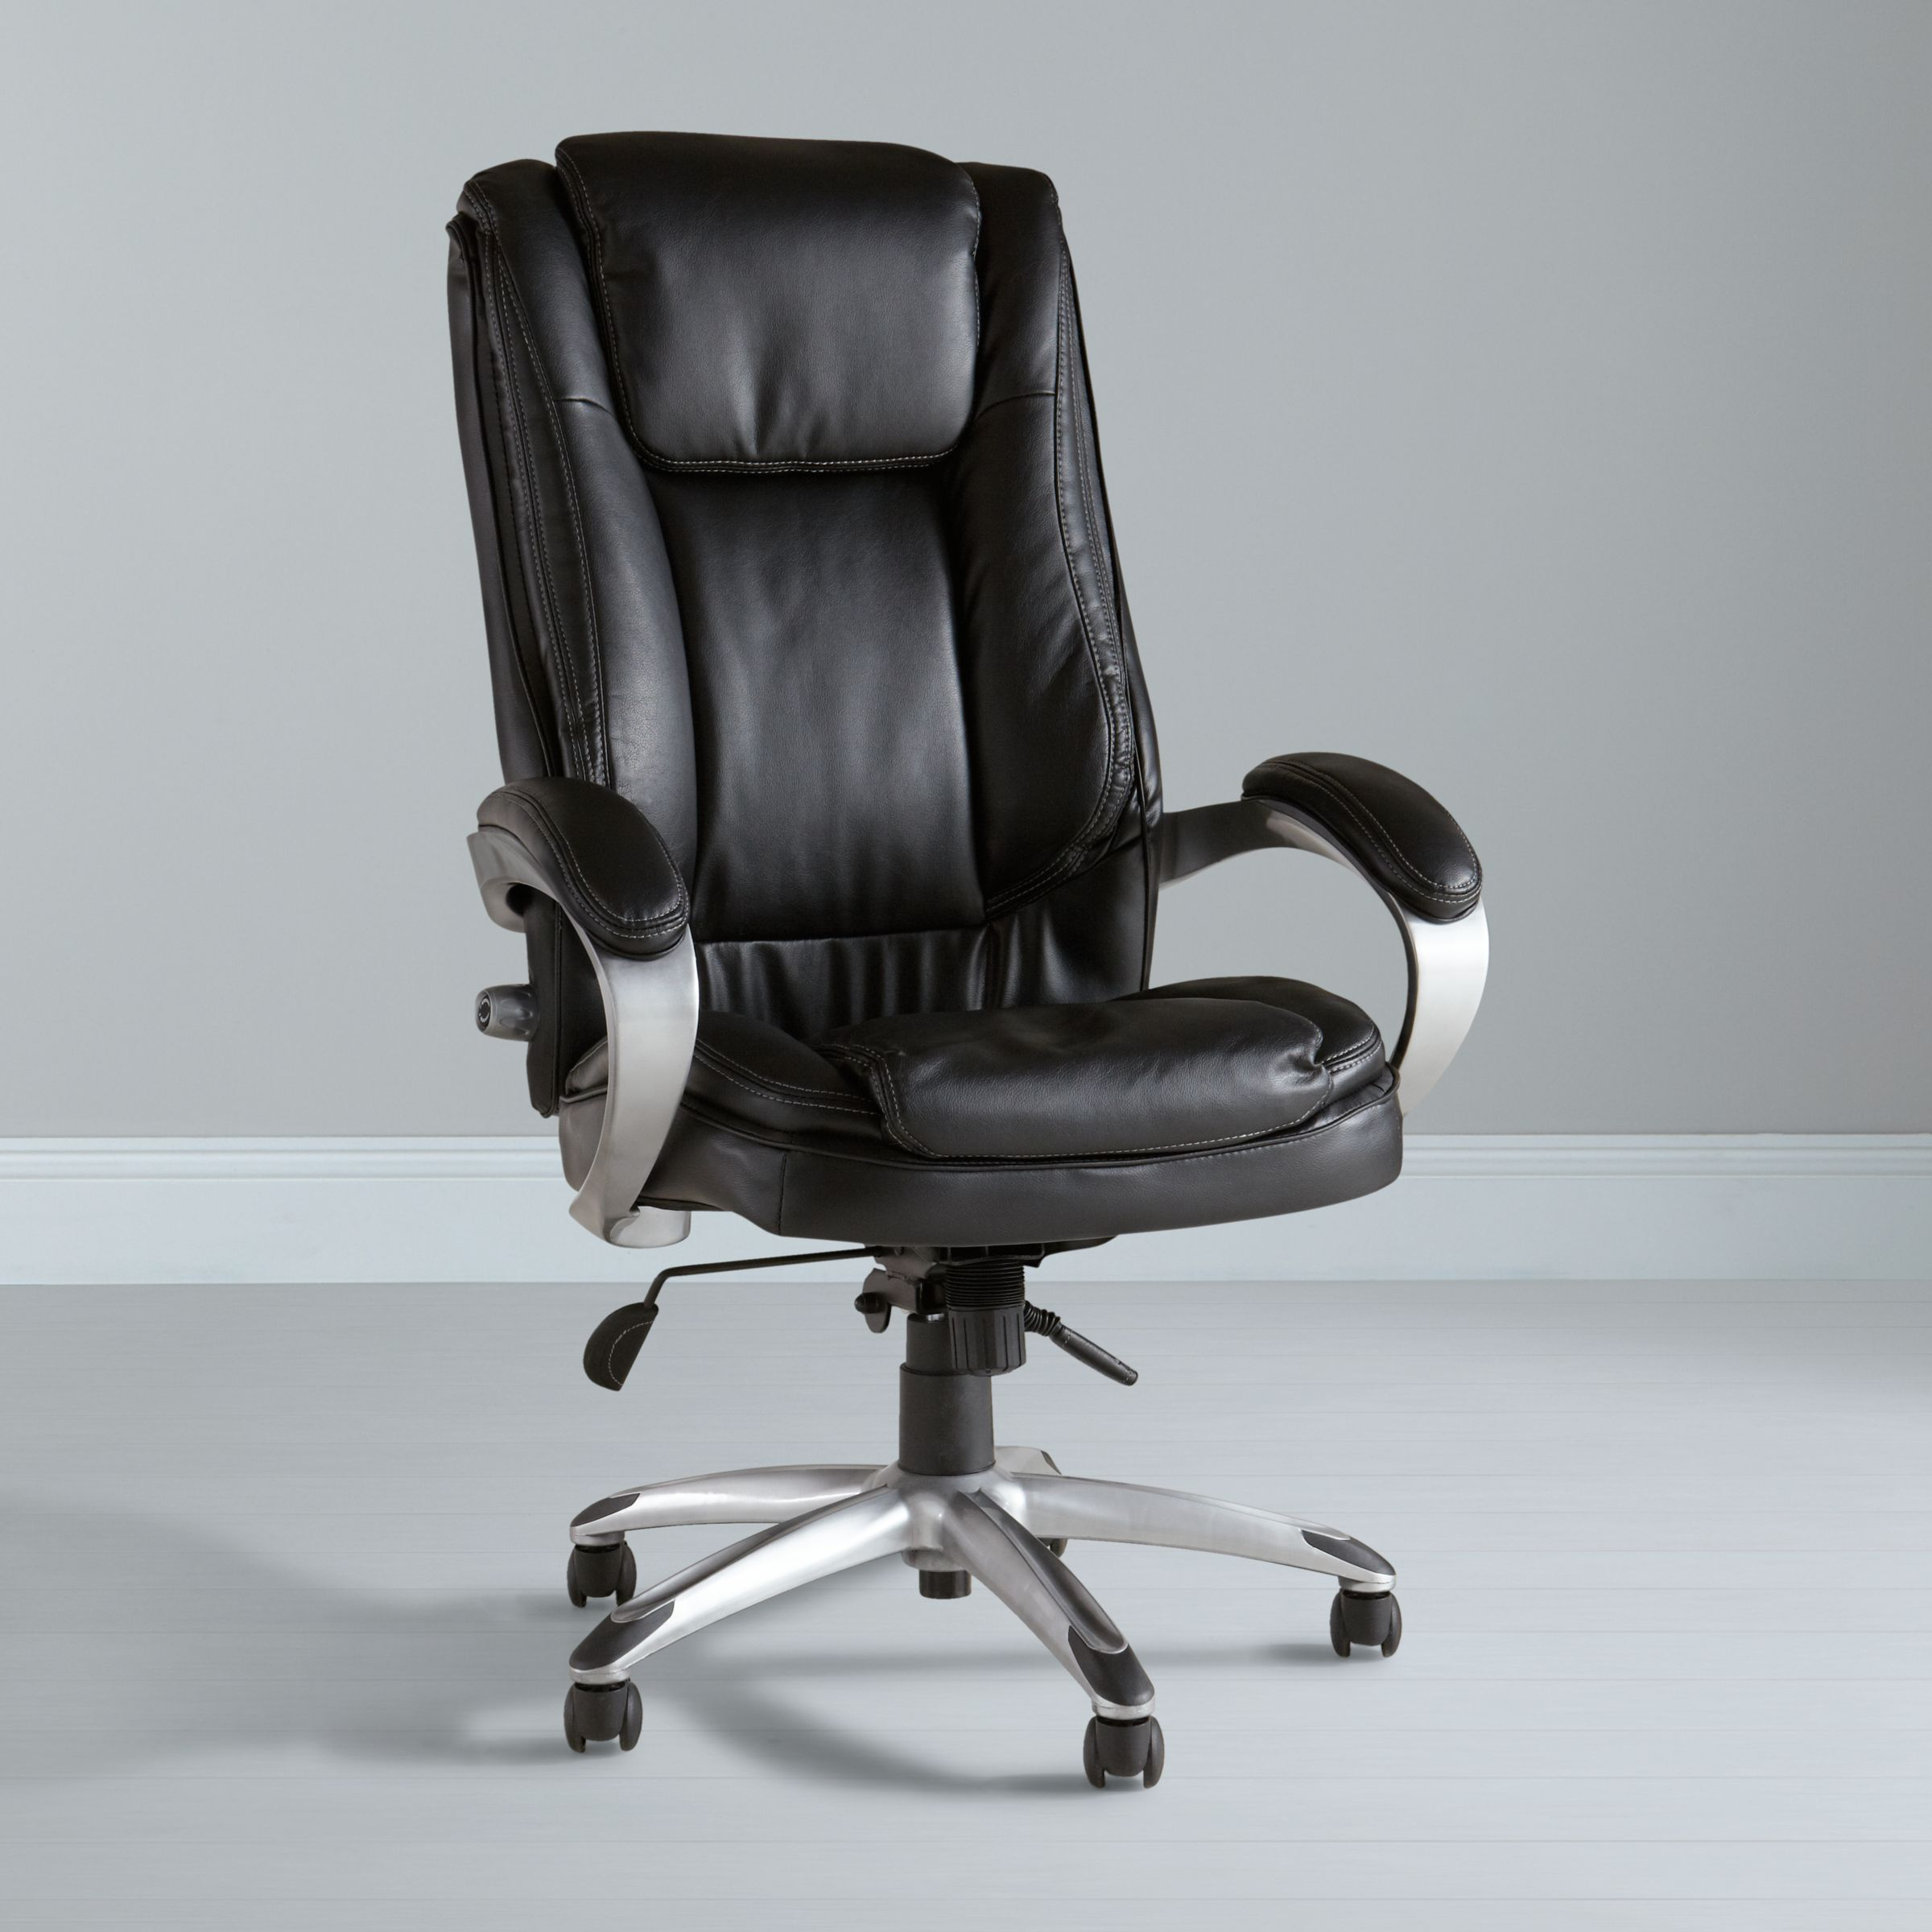 Spoon Office Chairs & My Favourite Modern Franklin Office Chair